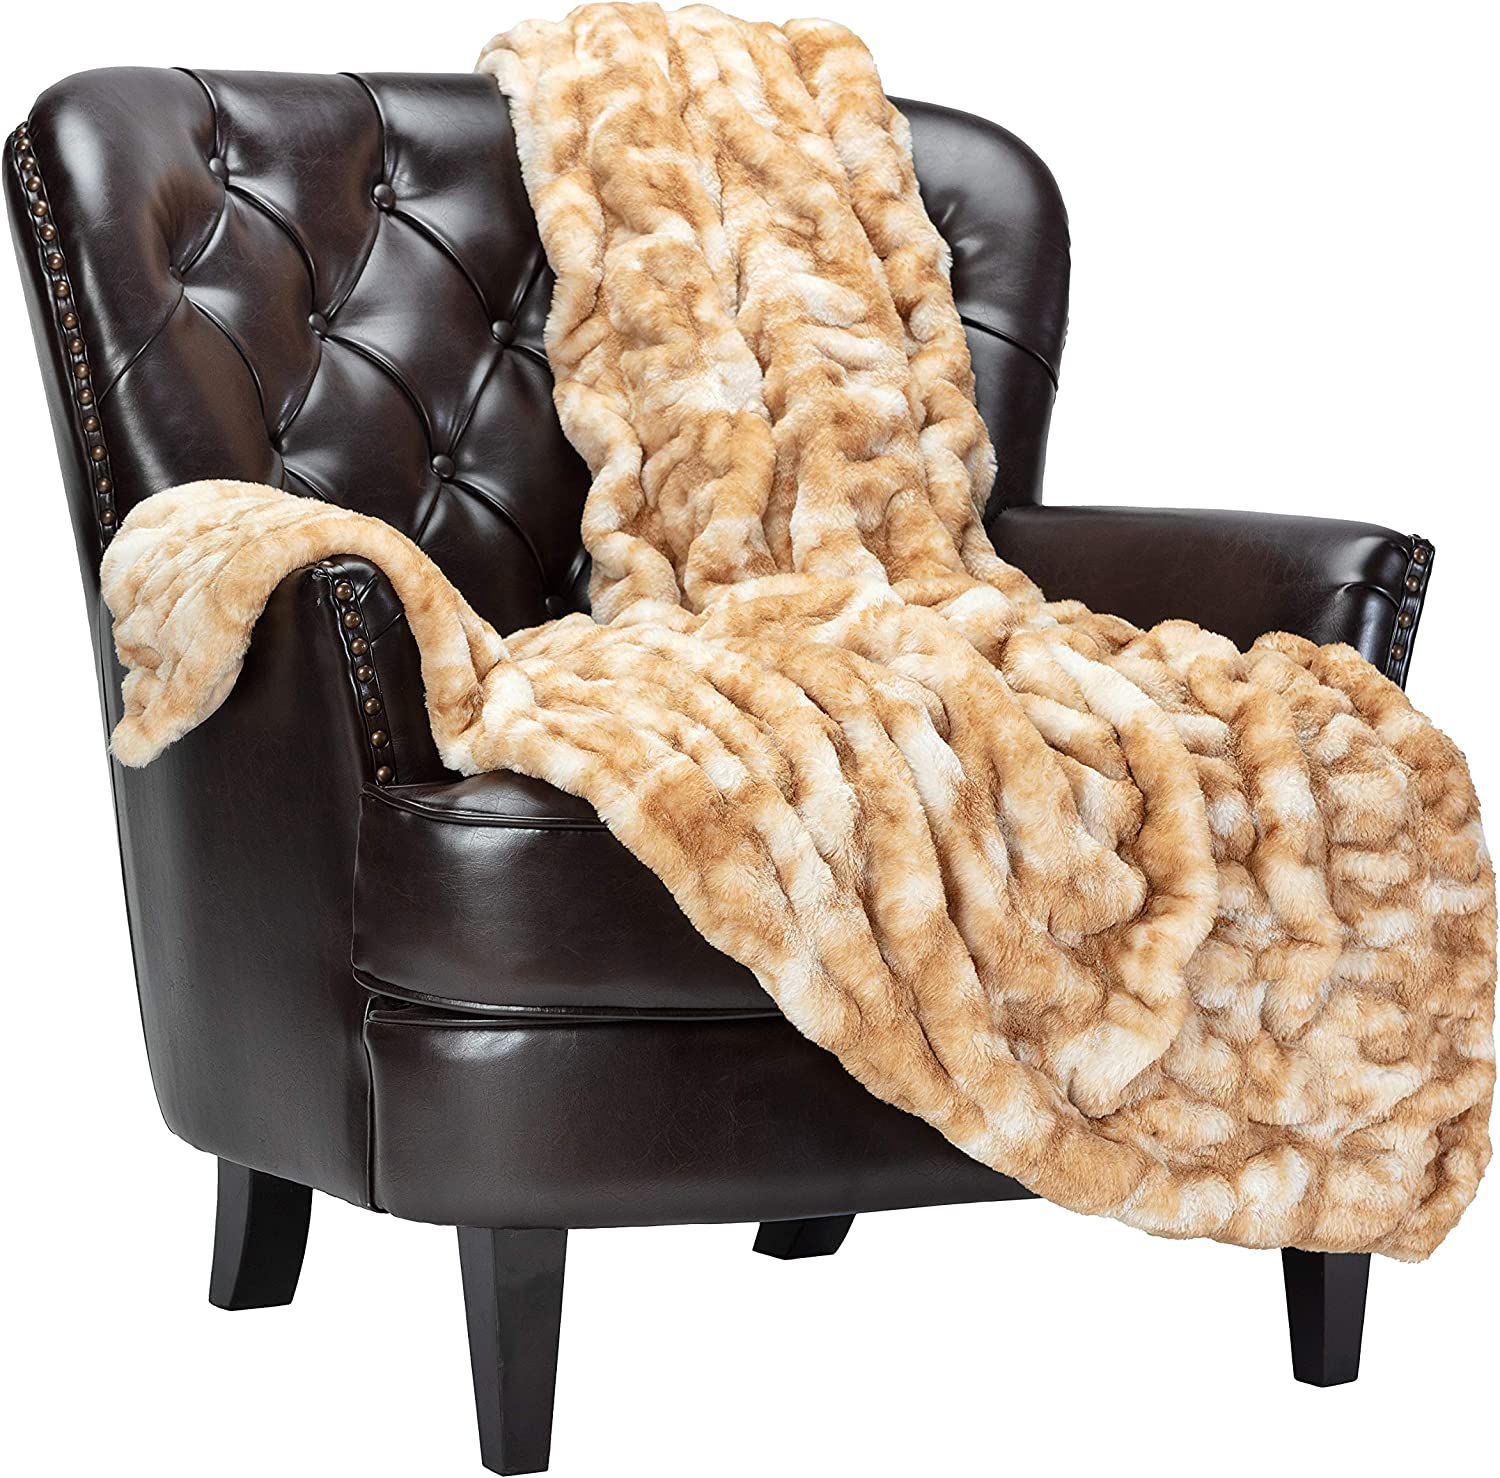 National uniform free shipping Chanasya Ruched Luxurious Soft Faux Fur Throw Pl Fuzzy excellence Blanket -